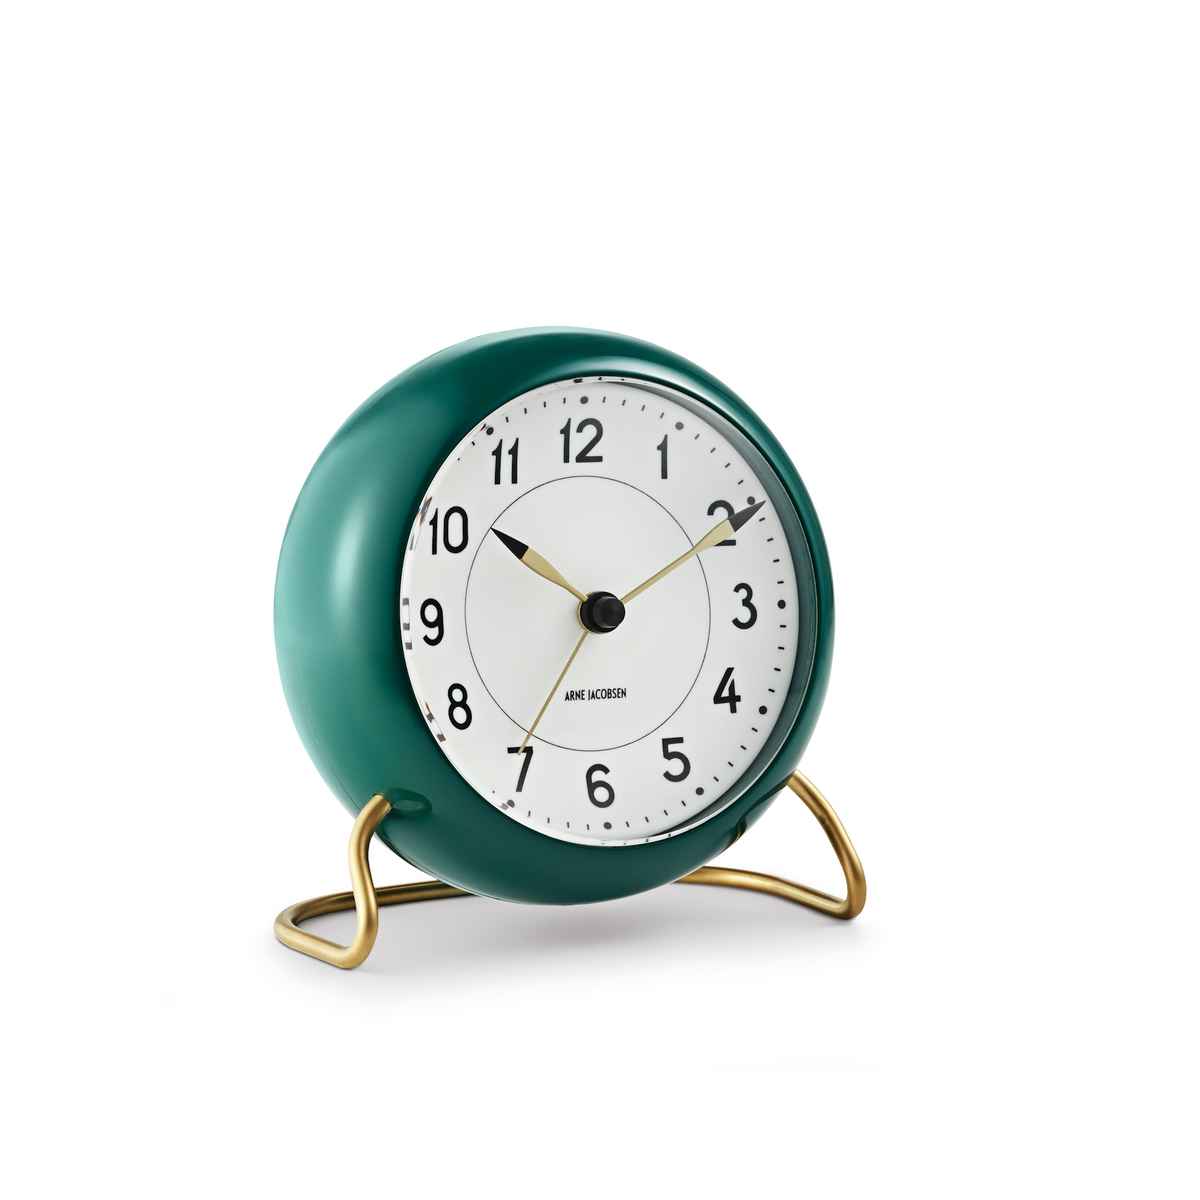 Station Alarm Clock, Green